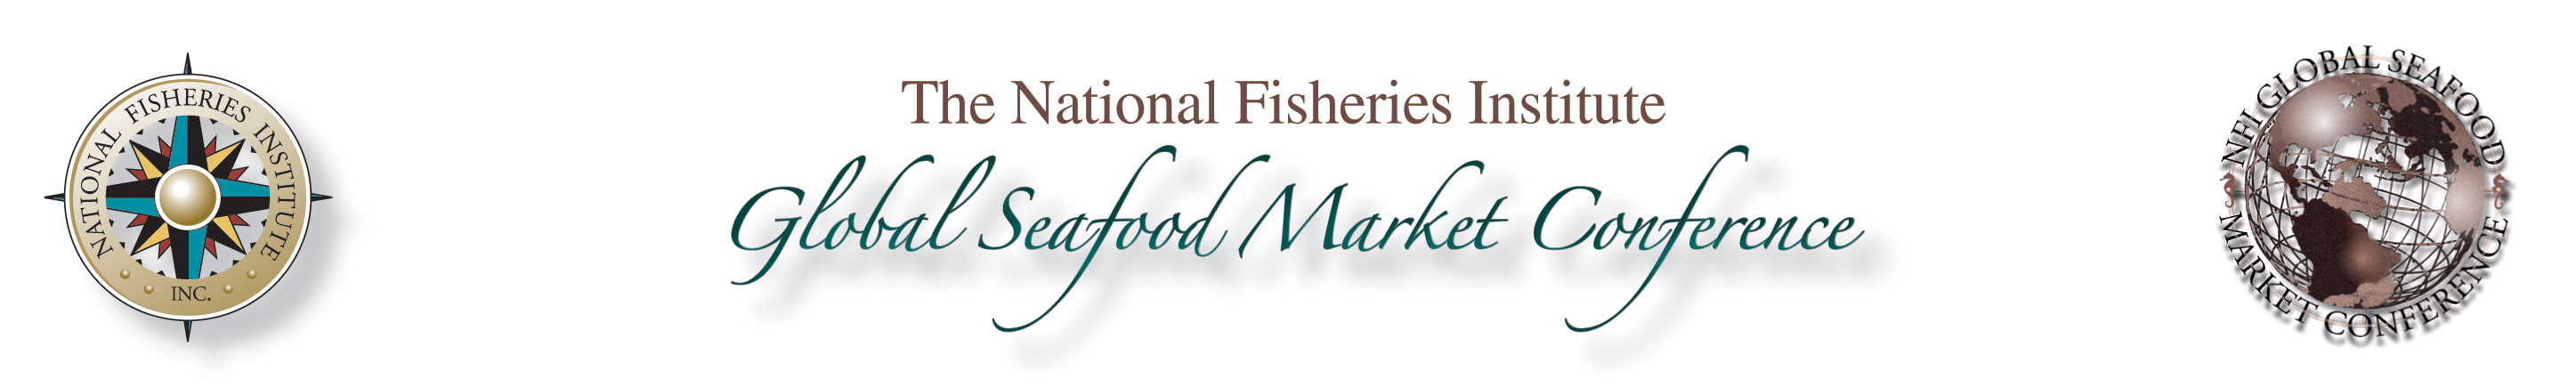 2014 Global Seafood Market Conference